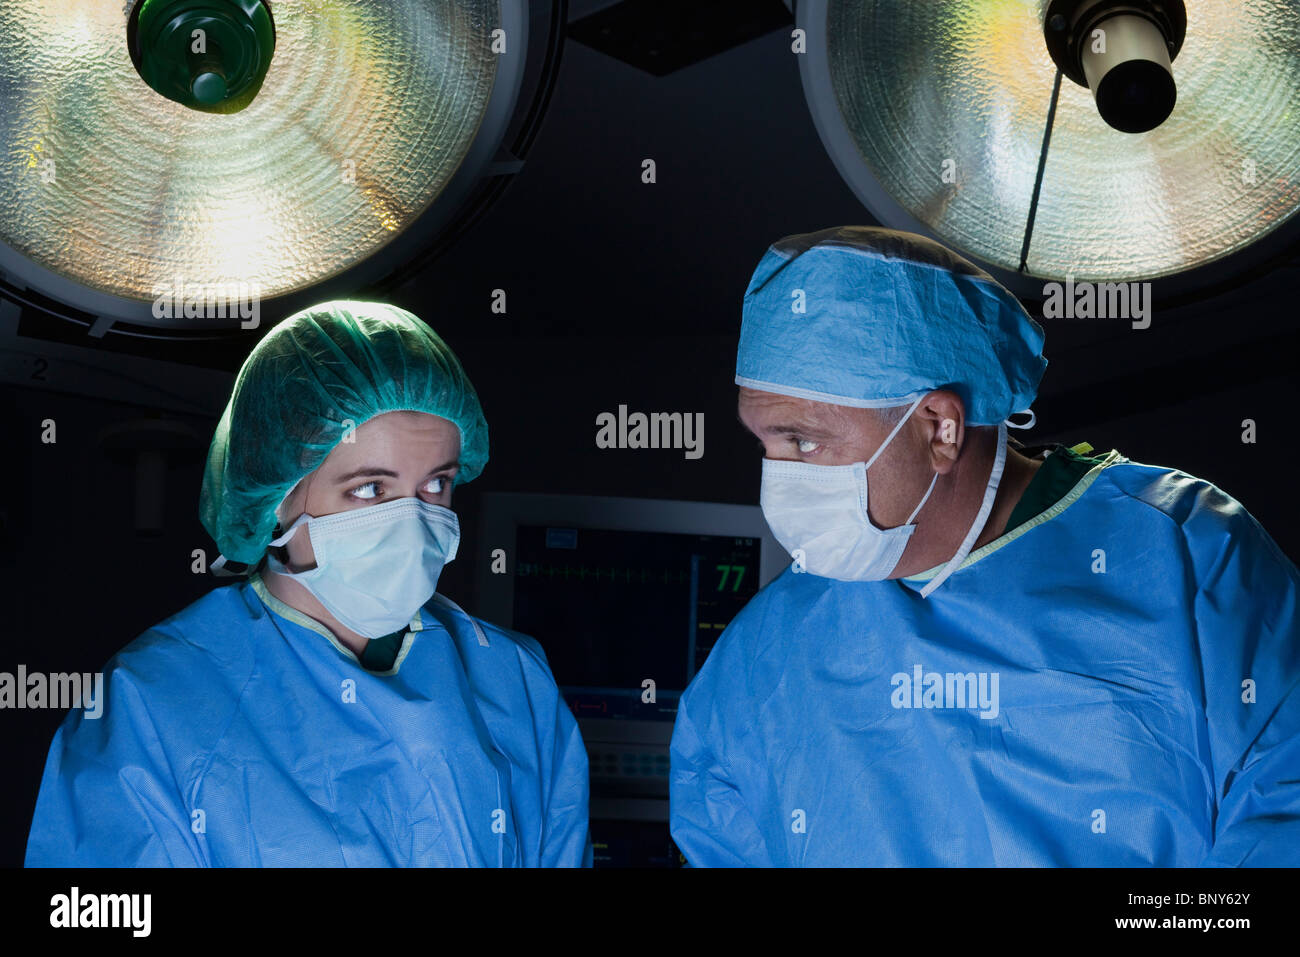 Surgical team at work in operating room - Stock Image